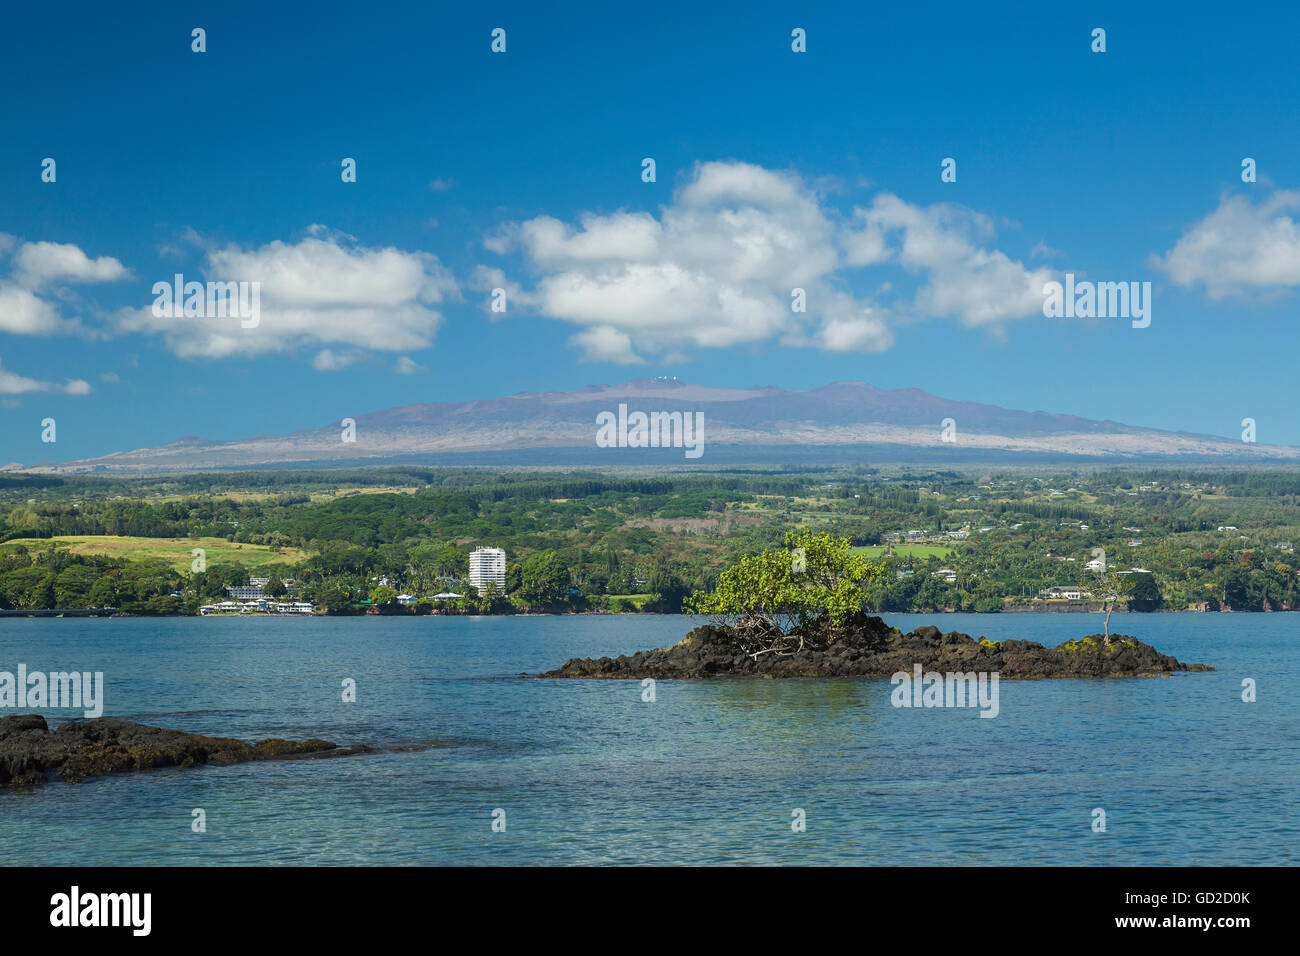 Hilo Bay with Hilo and Mauna Kea with observatories in the distance, tallest mountain in Hawaii - Stock Image